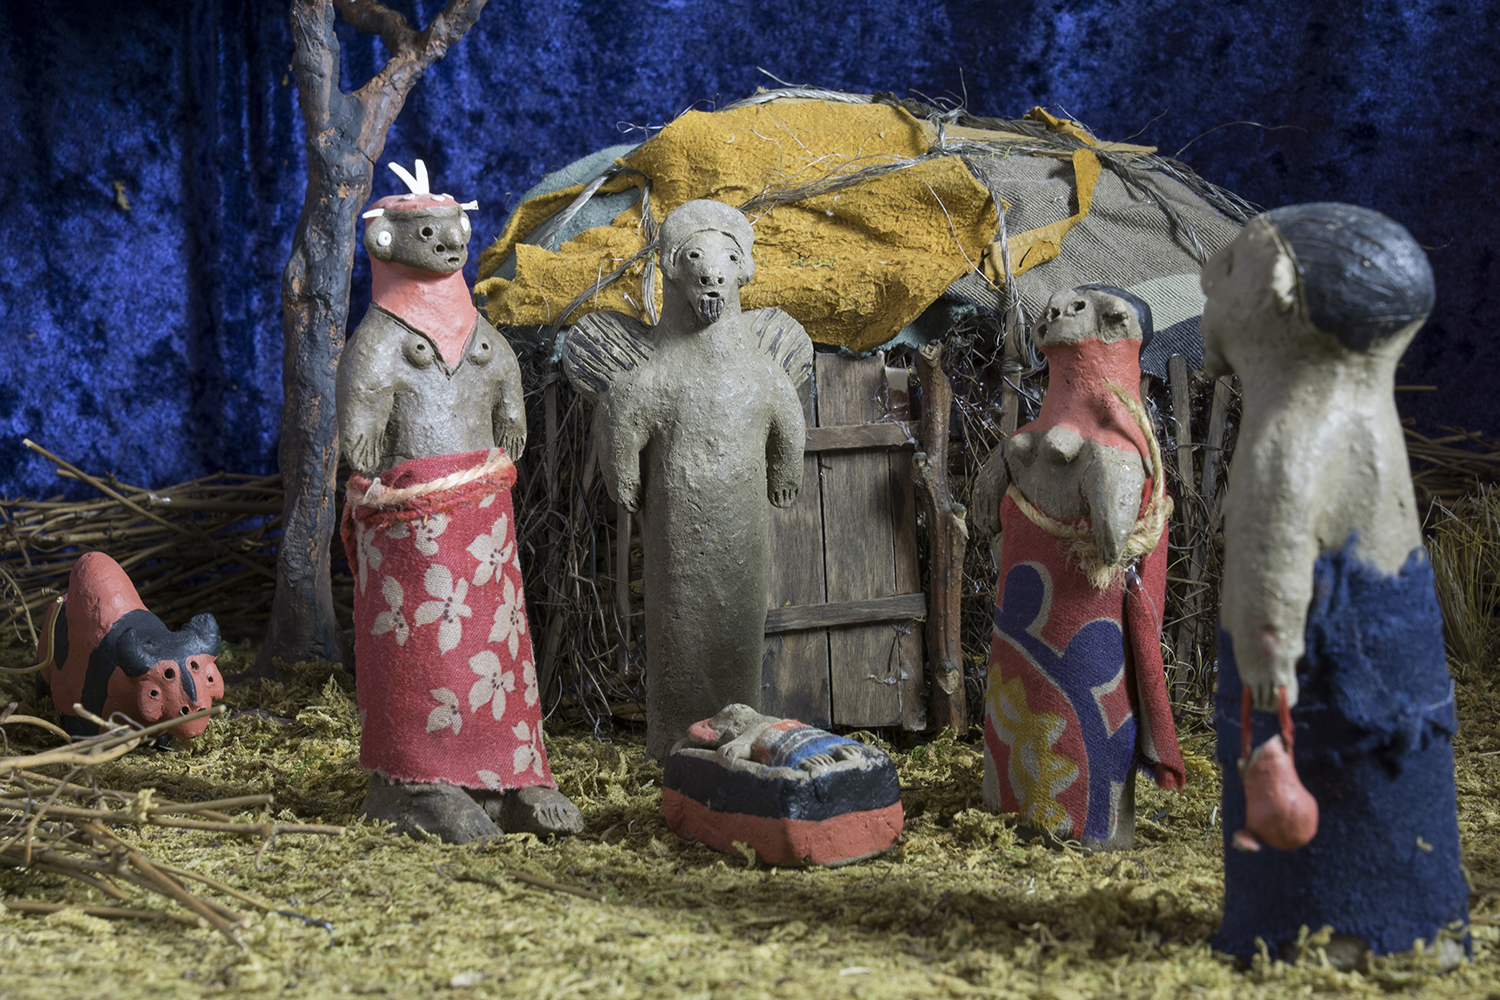 Figure 6:This Nativity was made in Kenya by a member of the Samburu tribe from mud, dung, paint, and cloth. The Samburu are a semi-nomadic ethnic group inhabiting northern Kenya. They share a common language with the Maasai and wear the same form of dress—brightly colored shukas. The figures in this Nativity are dressed in traditional shukas. The Samburu believe in one supreme god, Nkai. Today some Samburu have adopted Christianity. On loan from the Knights of Columbus Museum, New Haven, Connecticut.